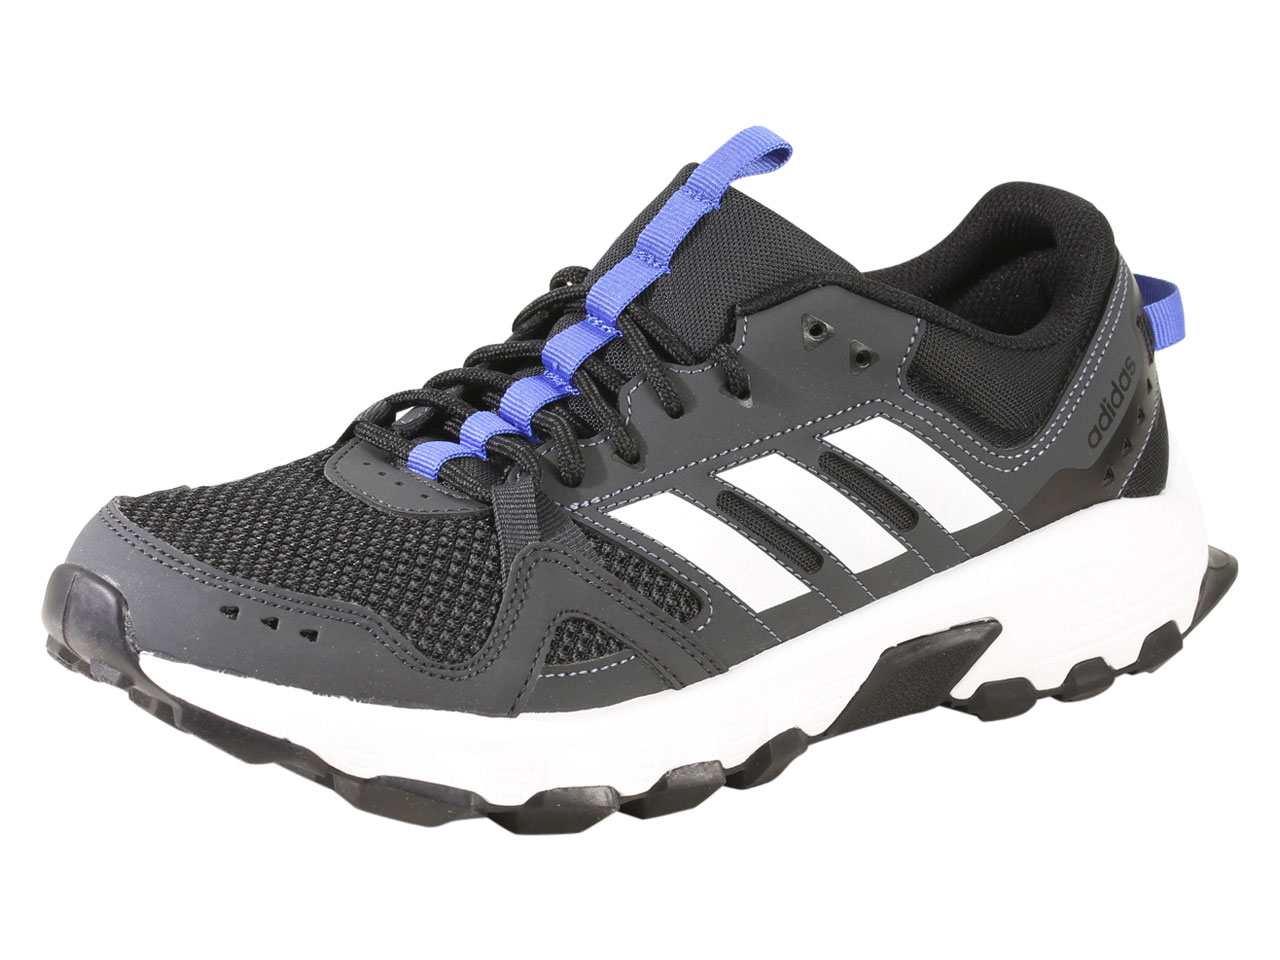 9f75695c1cd59 Adidas Men s Rockadia Trail Running Sneakers Shoes